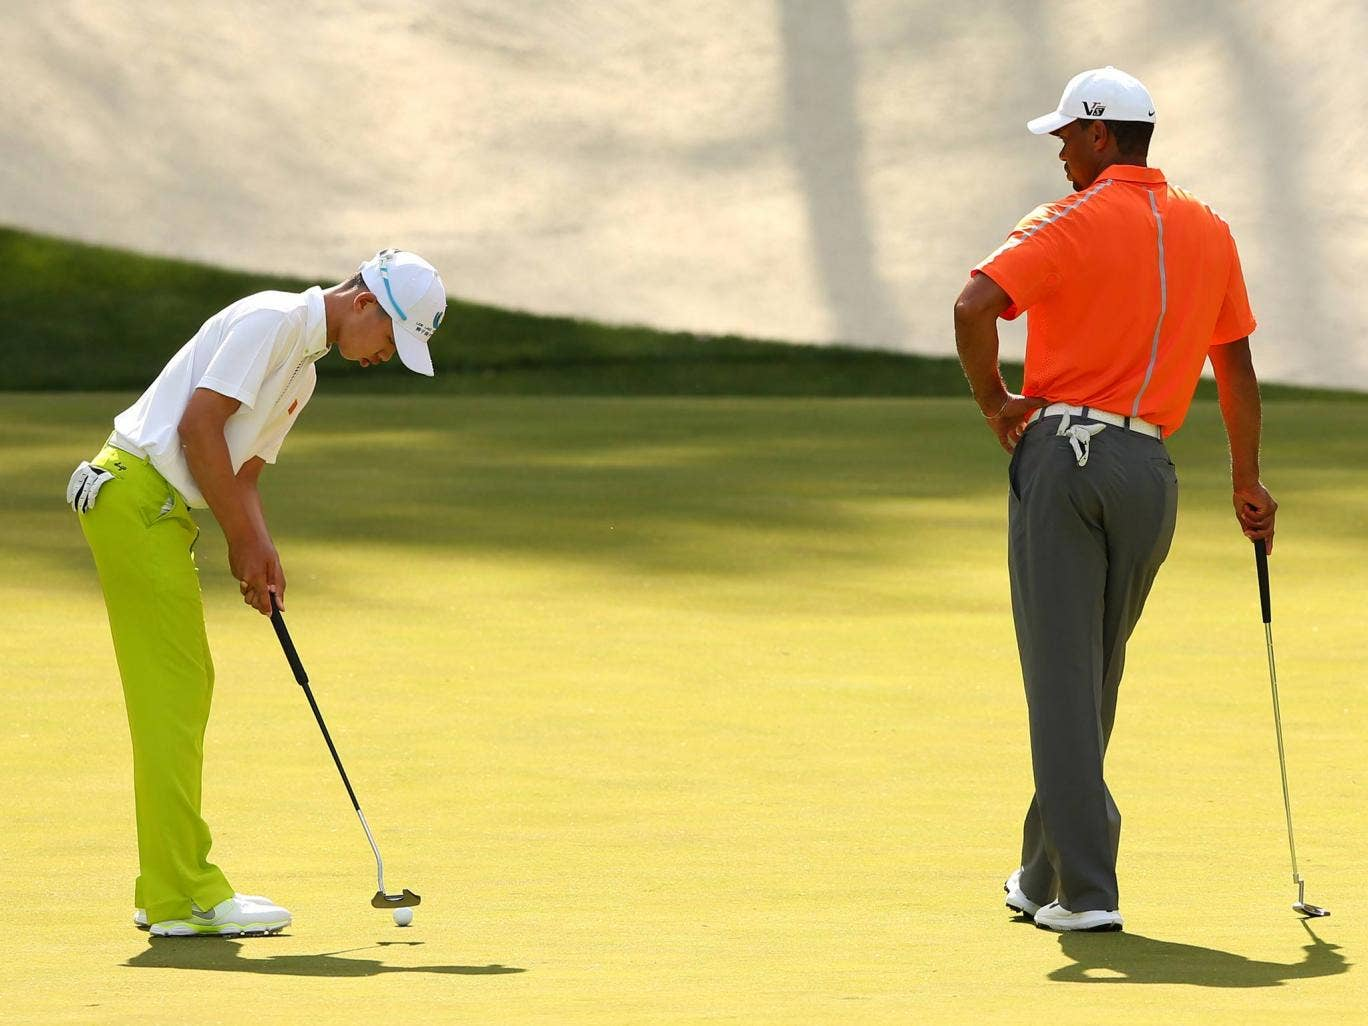 Tianland Guan practices alongside Tiger Woods at Augusta